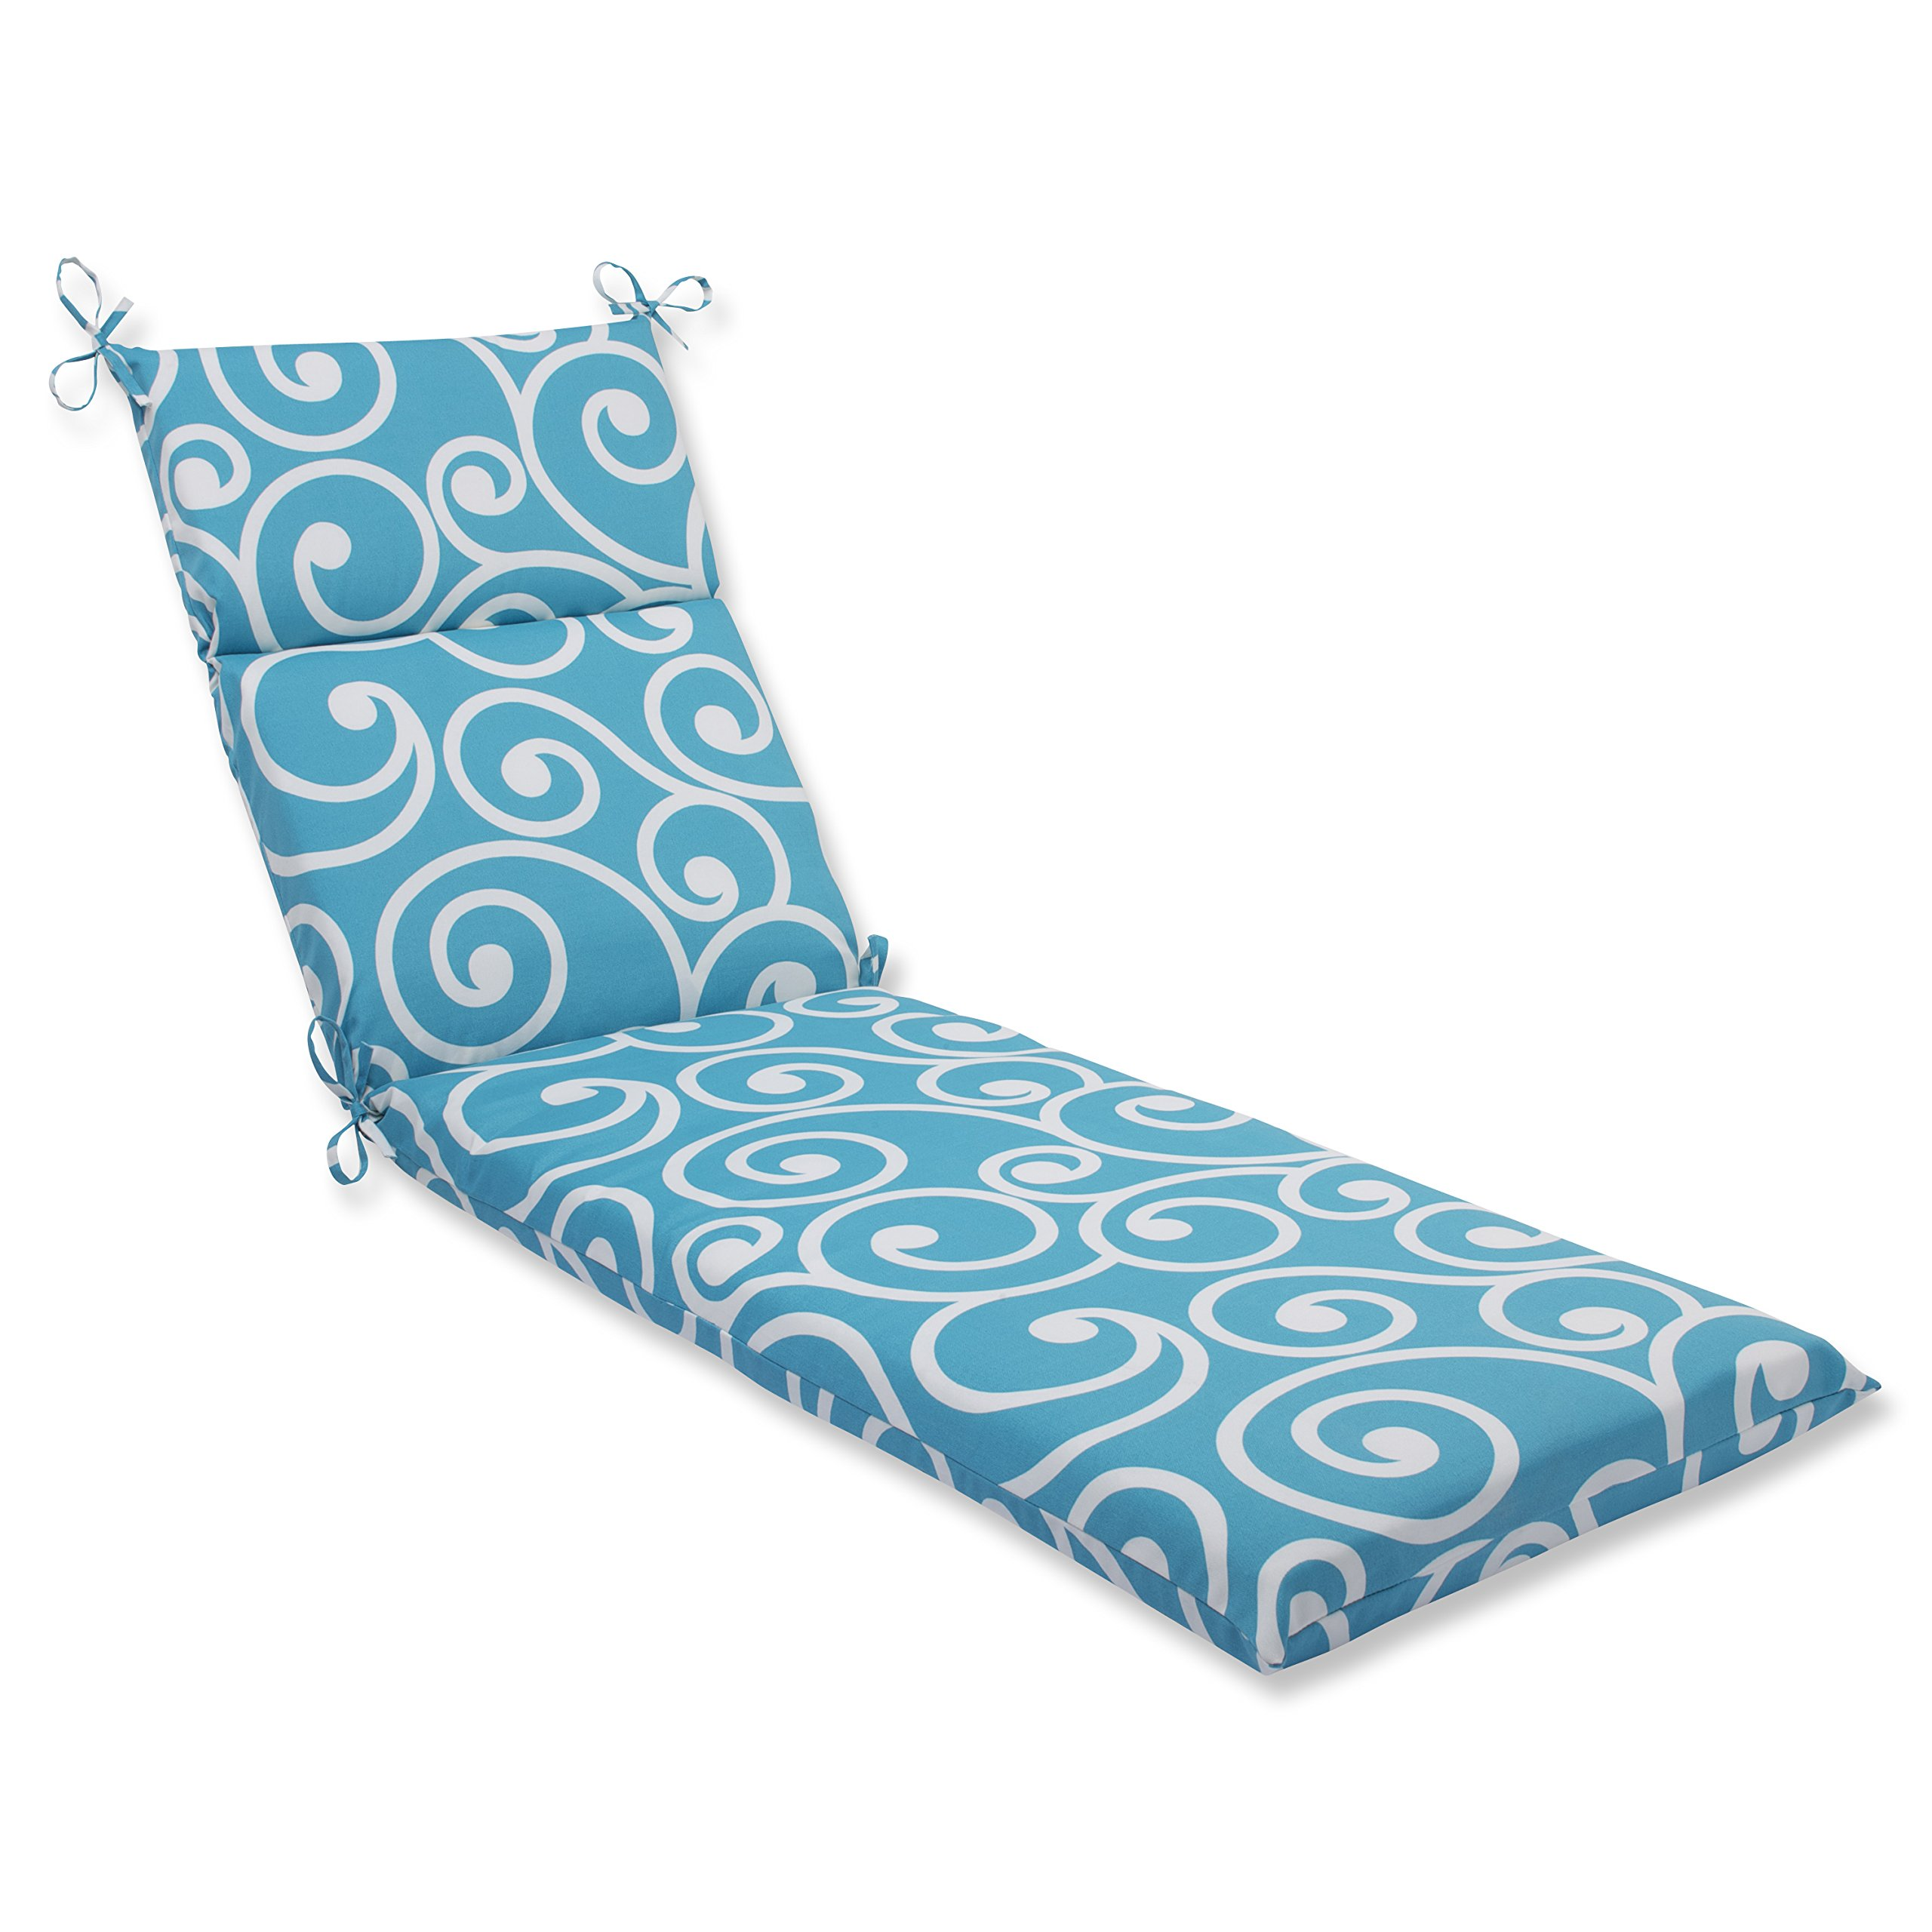 """Pillow Perfect 563411 Outdoor/Indoor Best Chaise Lounge Cushion, 72.5"""" x 21"""", Turquoise"""